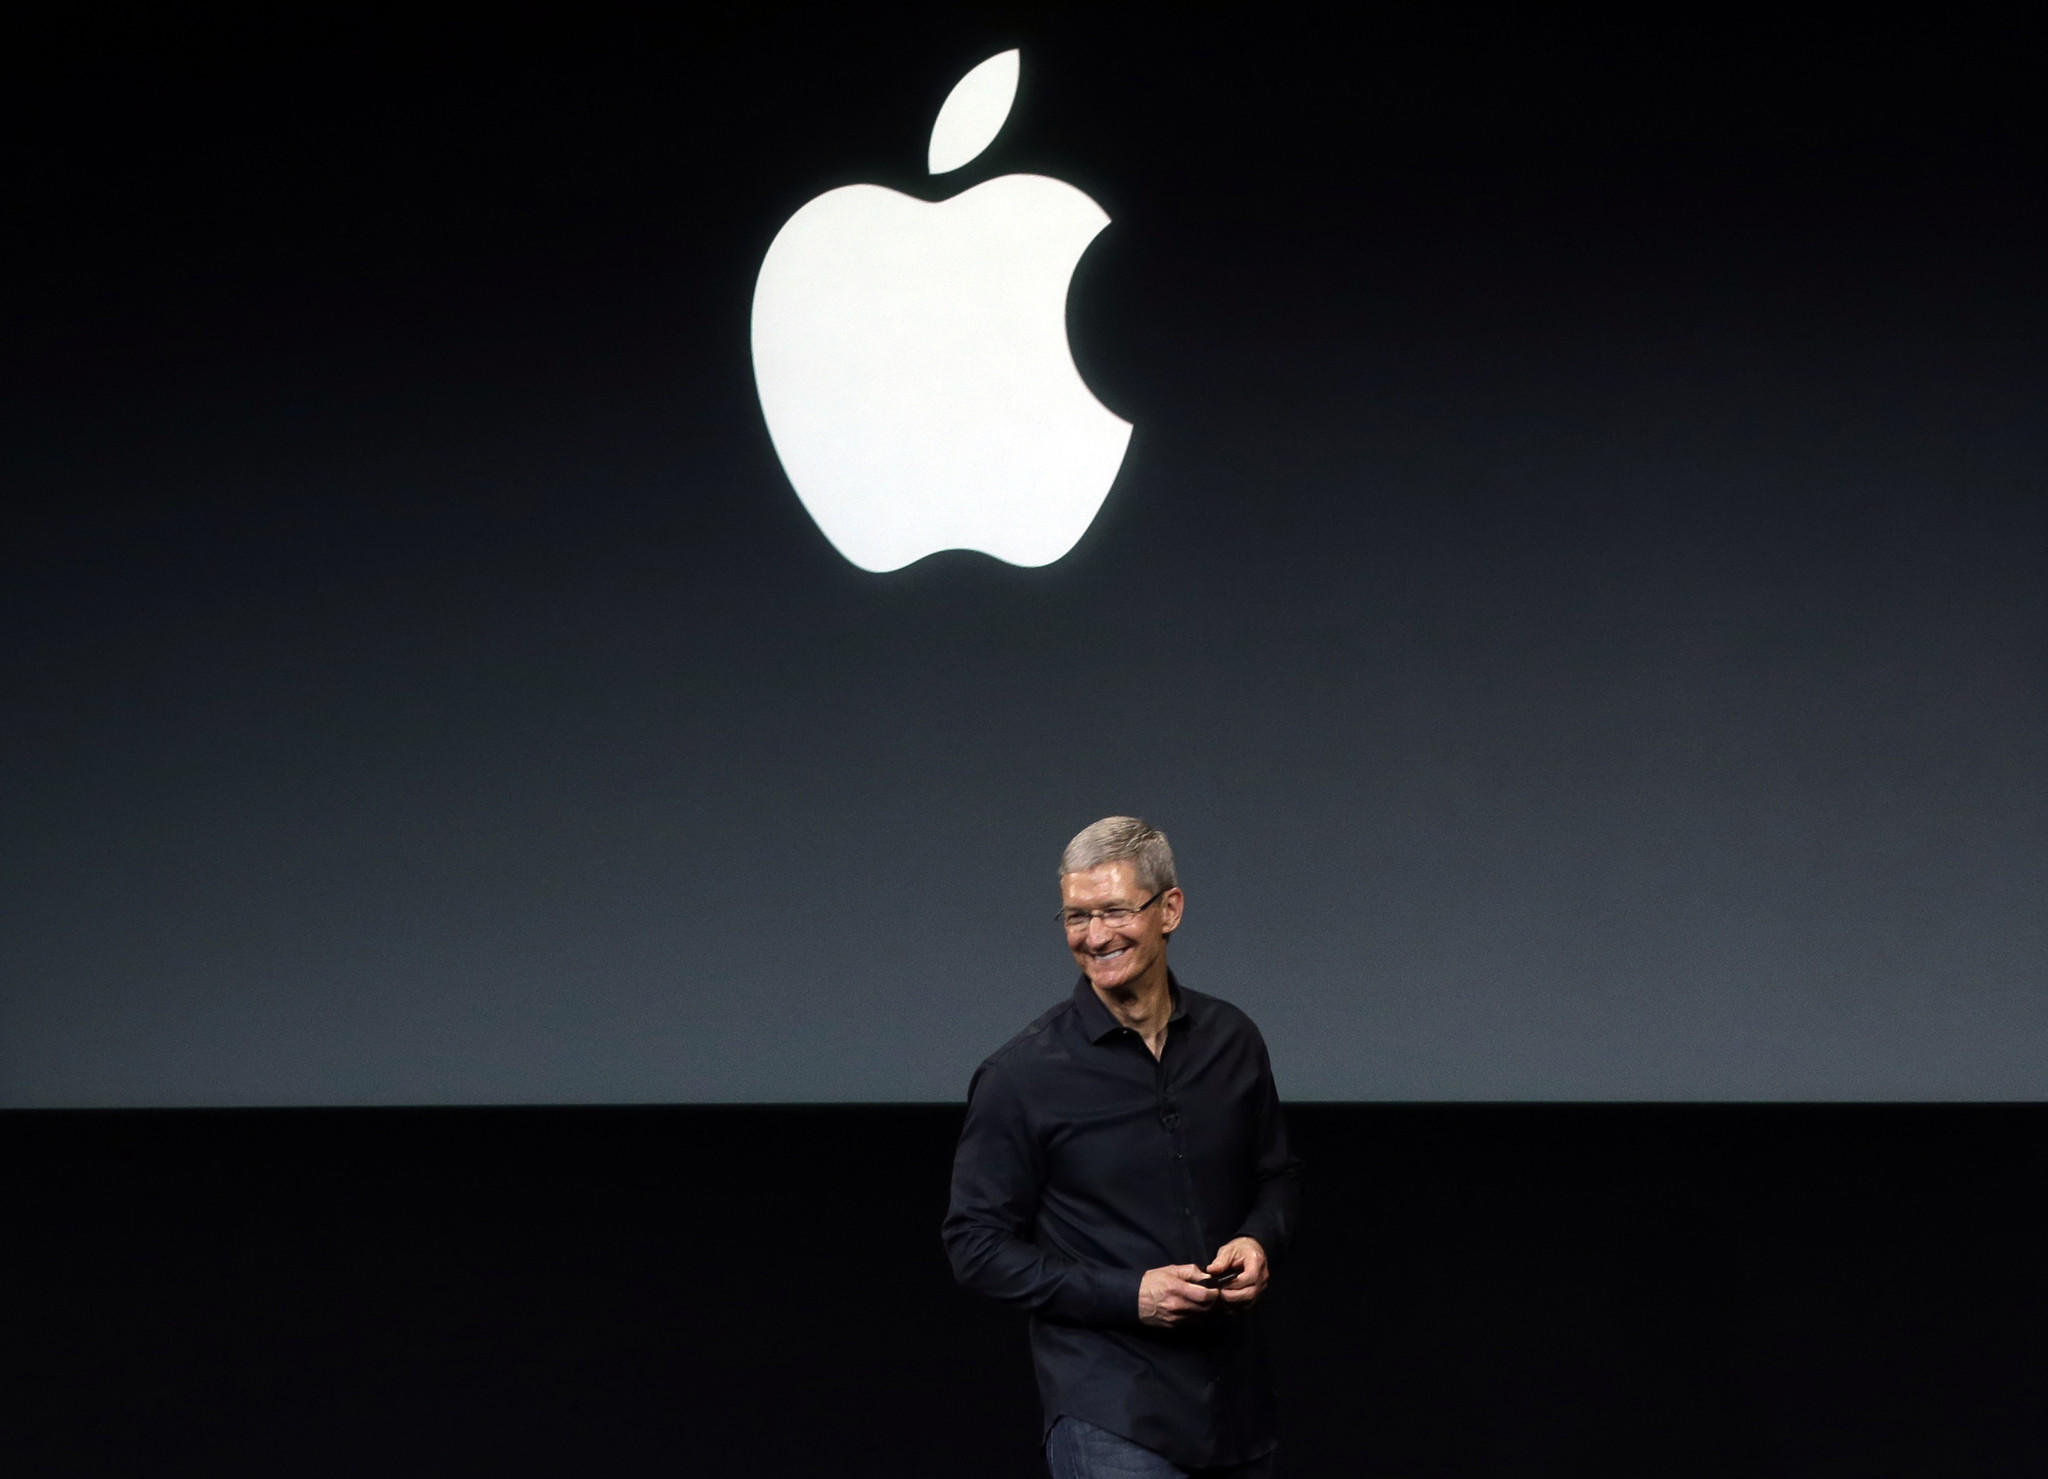 Apple Chief Executive Tim Cook speaks before a new-product introduction in Cupertino, Calif.